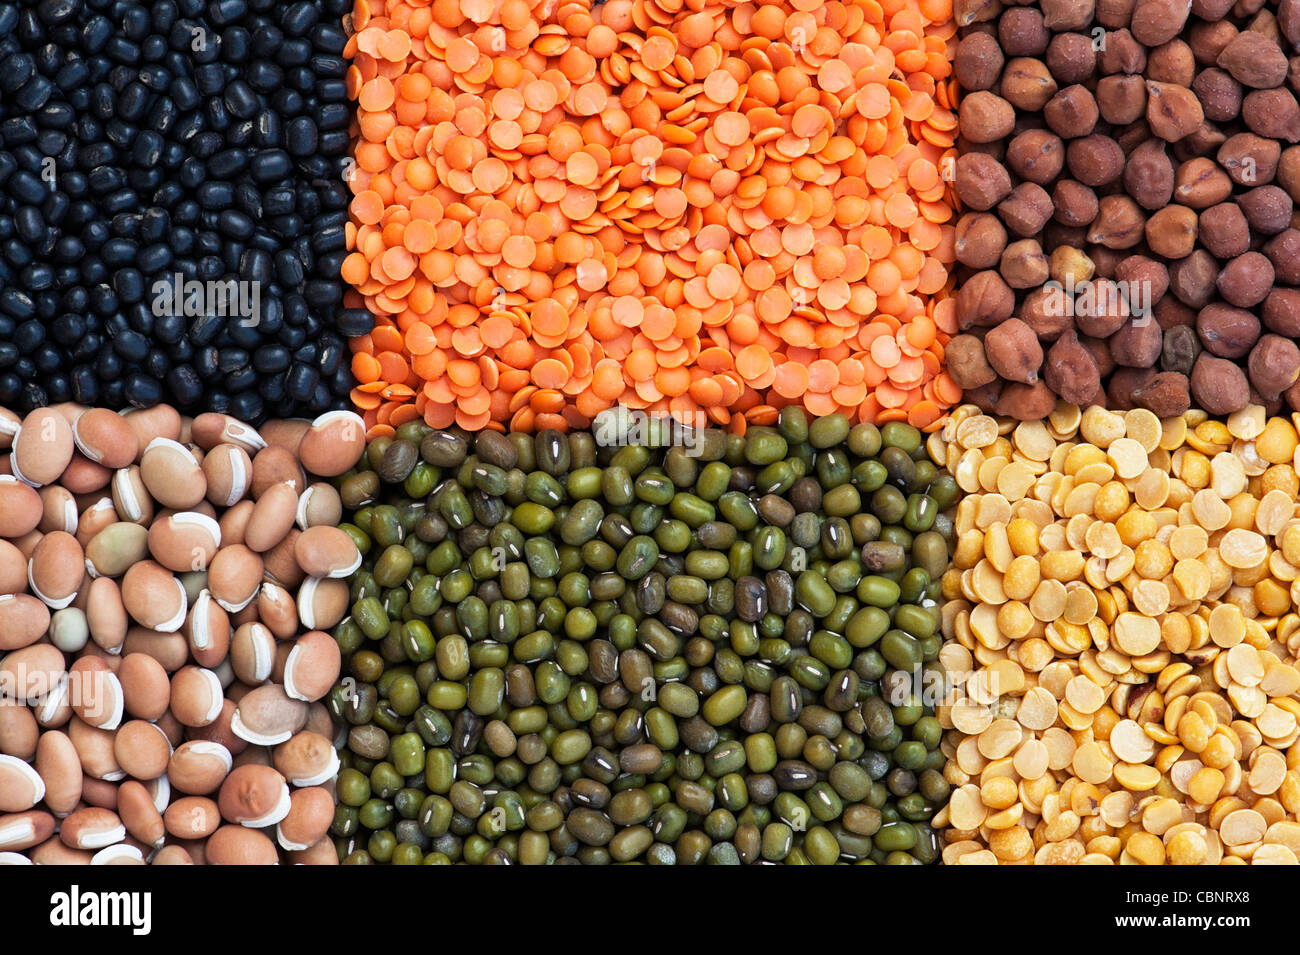 Pulses, seeds, bean and lentil pattern Stock Photo: 41661712